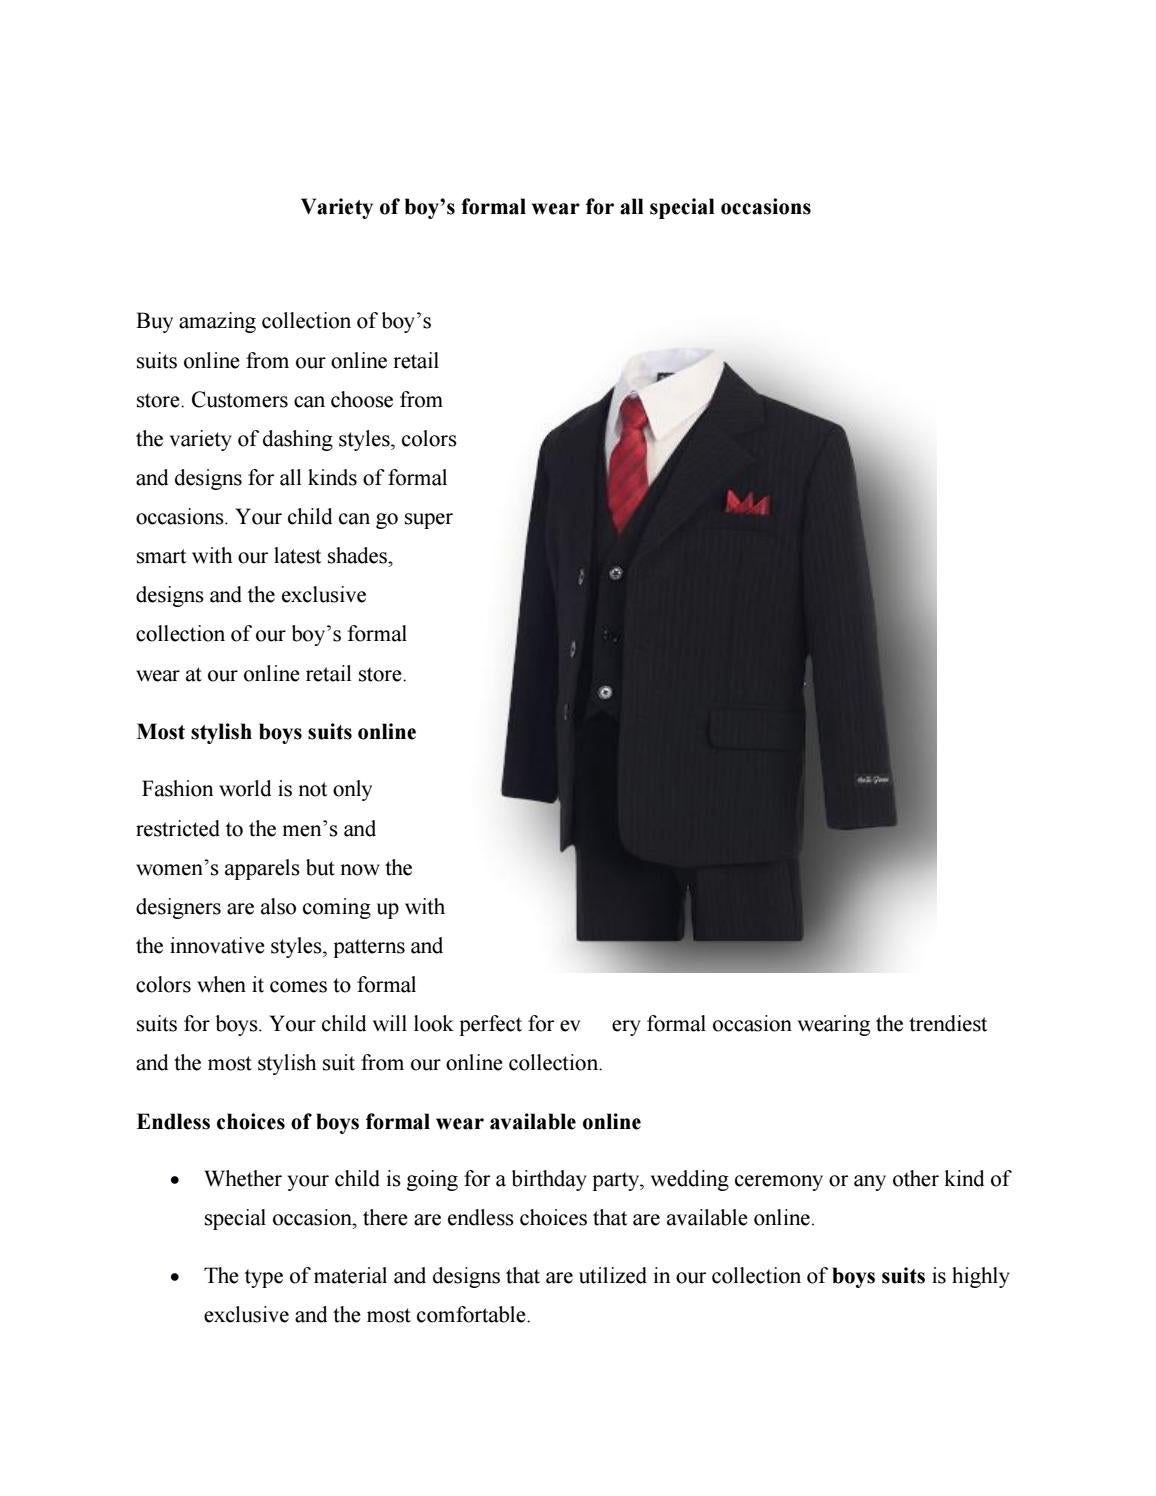 Variety of boy's formal wear for all special occasions by Andrew Jackson -  issuu